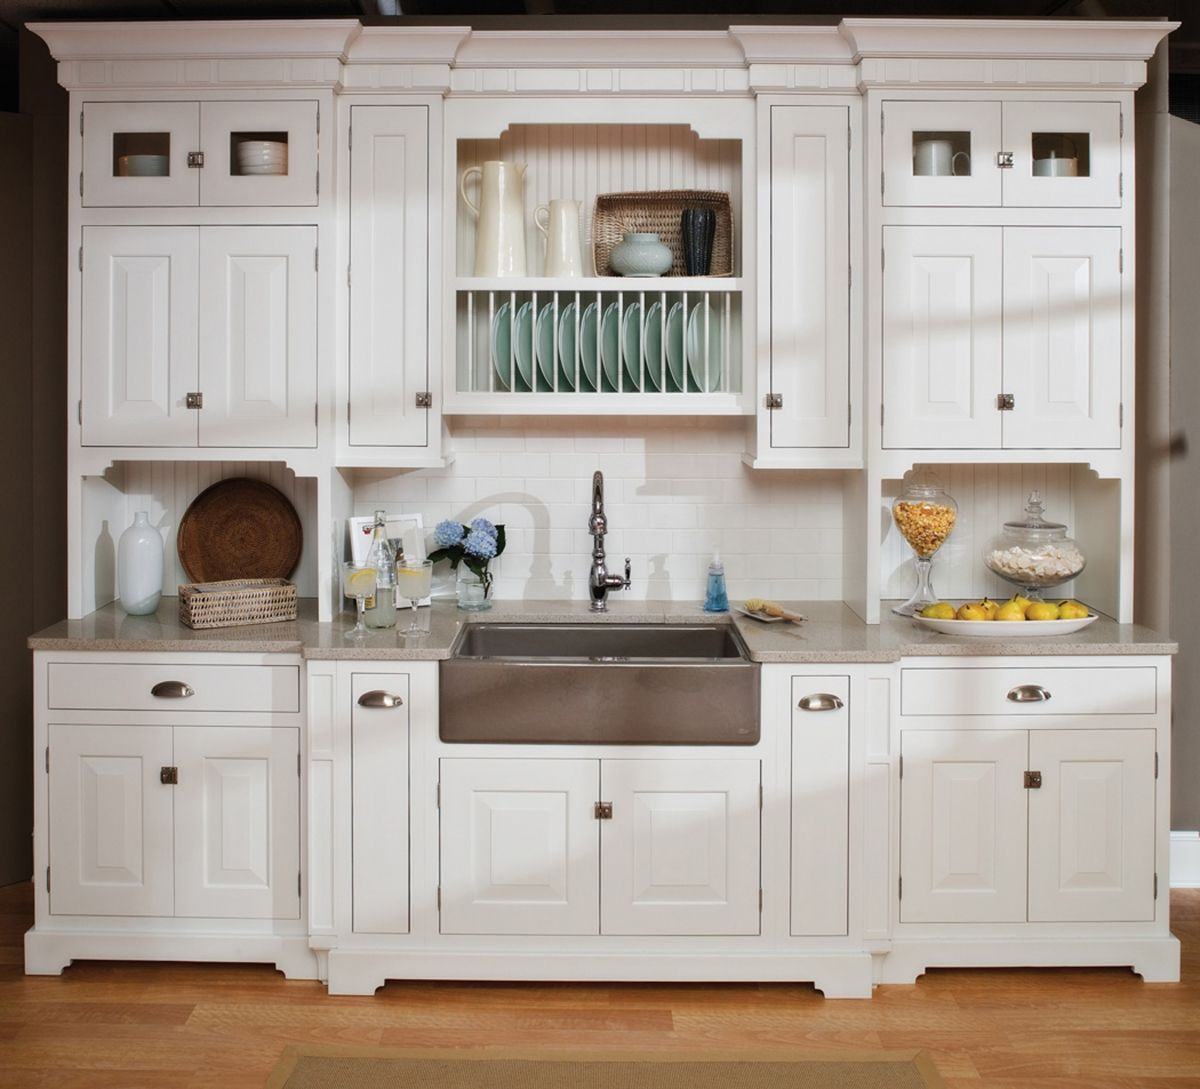 Cottage styled kitchen with Dura Supreme cabinetry, Bella style door ...